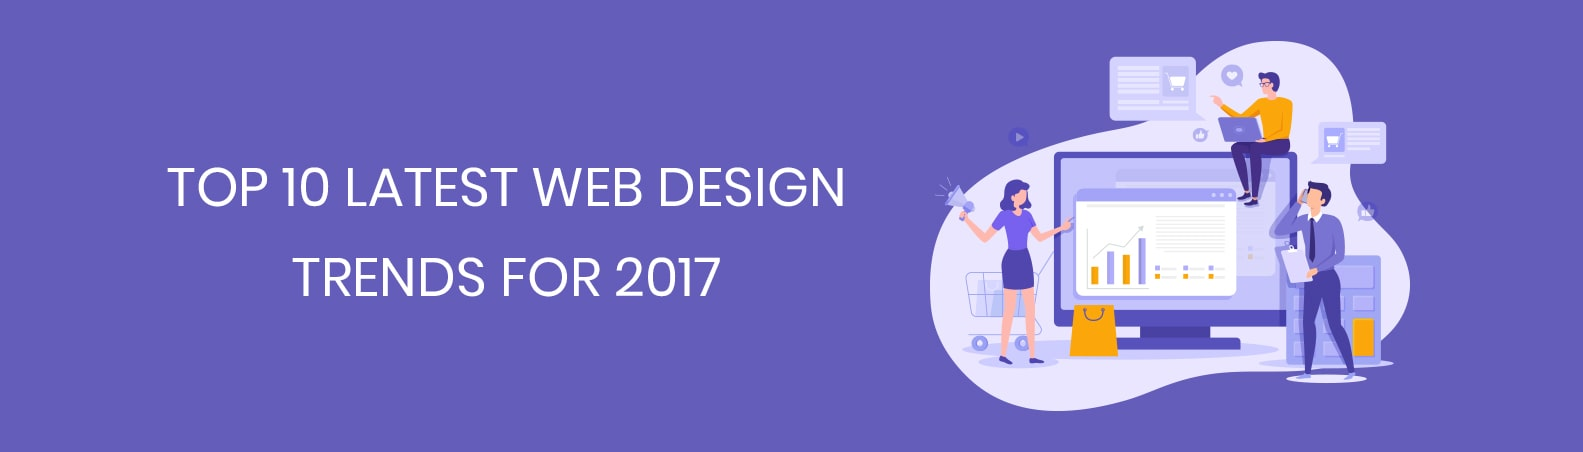 Top 10 Latest Web Design Trends for 2017 | Web Design